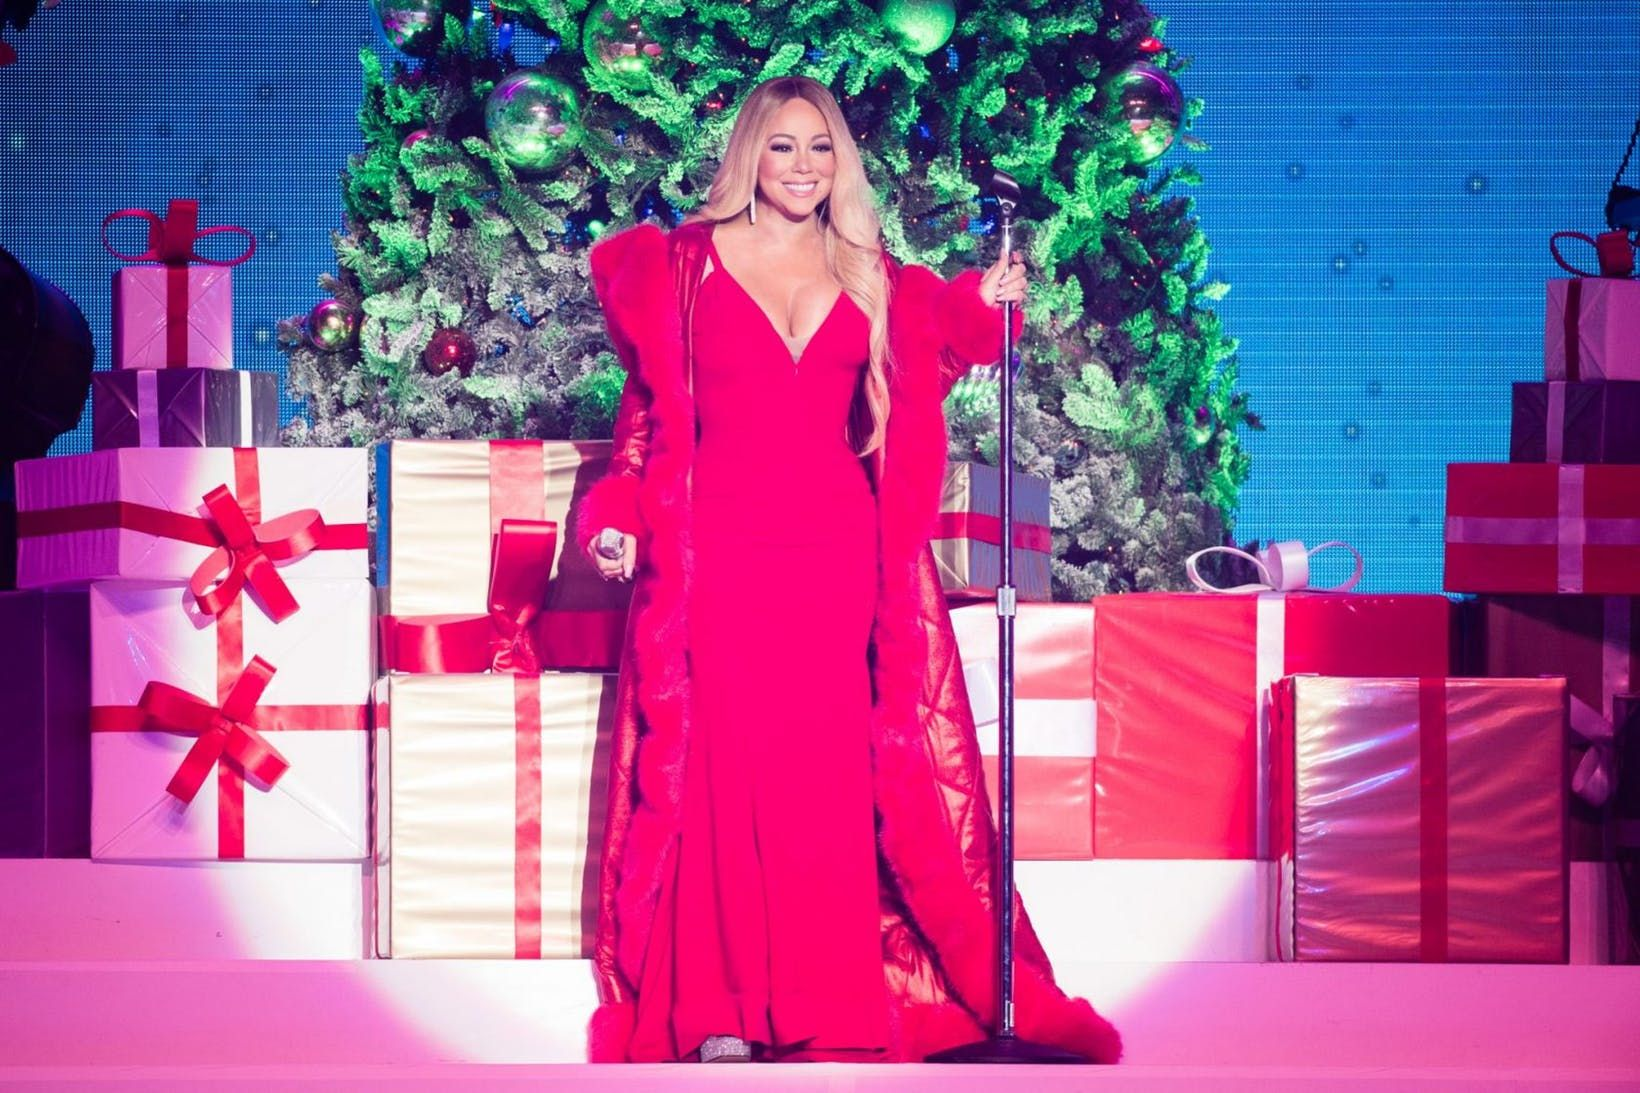 How much money Mariah Carey made on Spotify after that